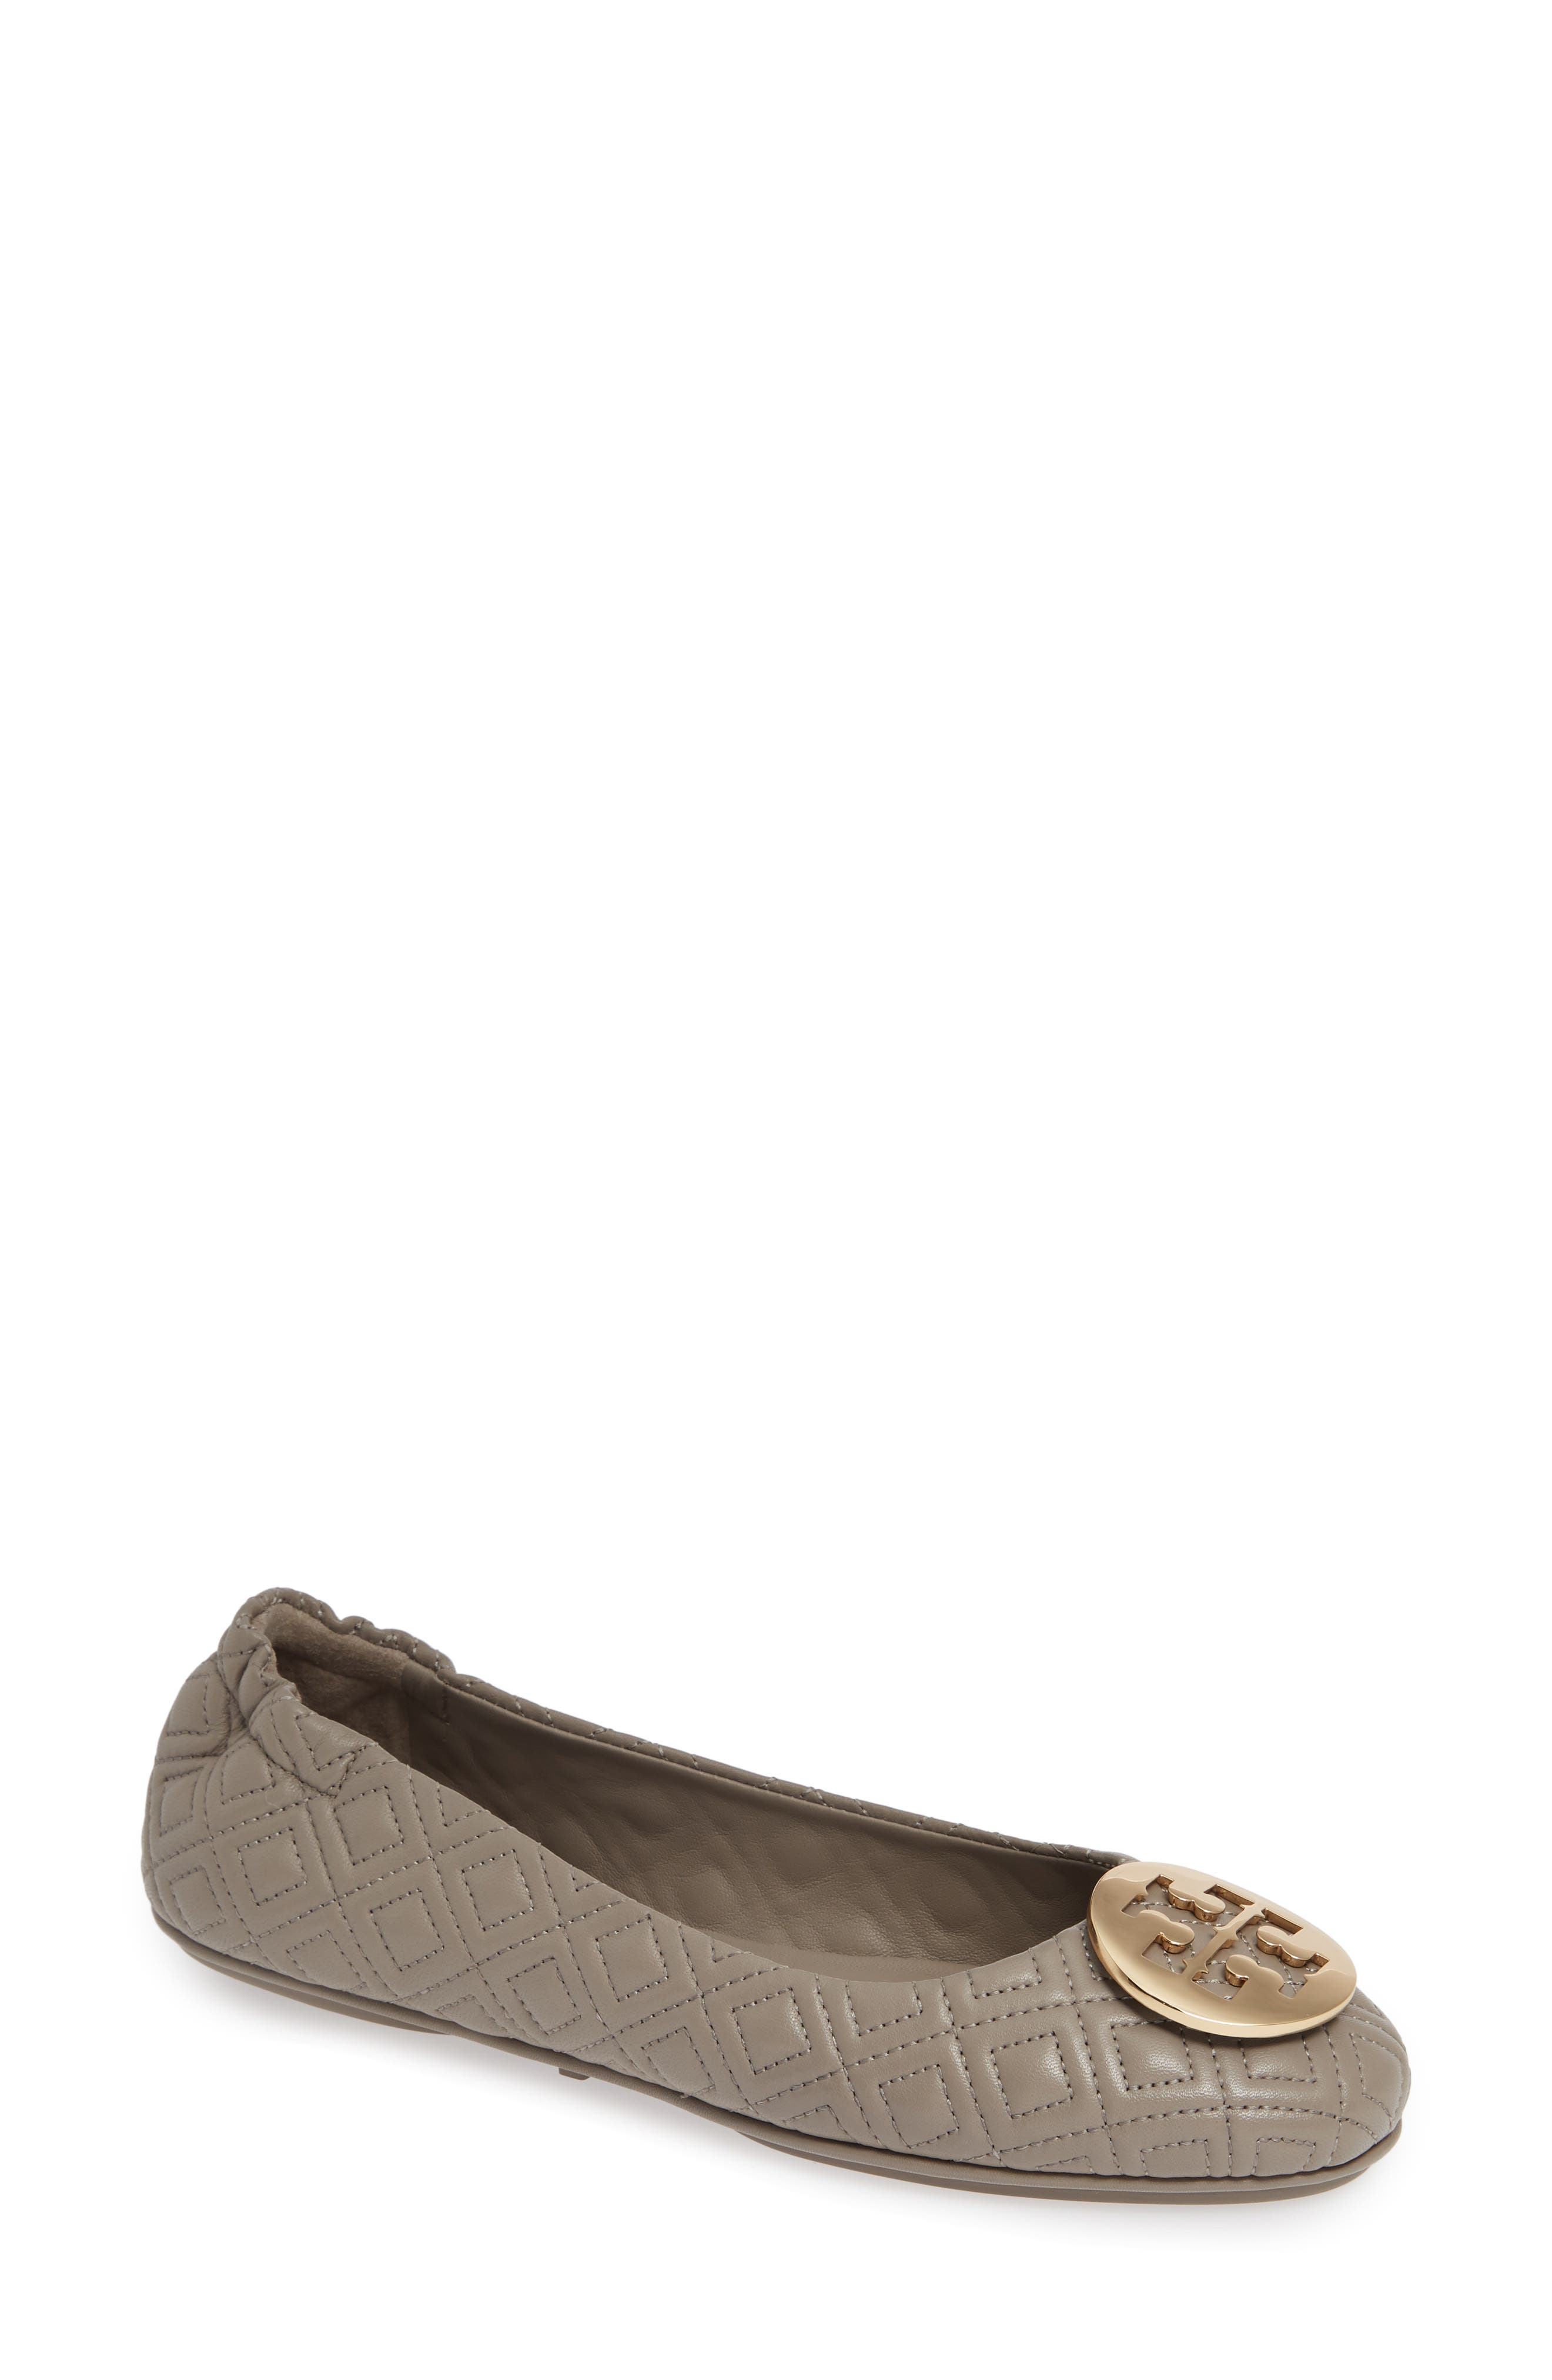 TORY BURCH Quilted Minnie Flat, Main, color, DUST STORM/ GOLD